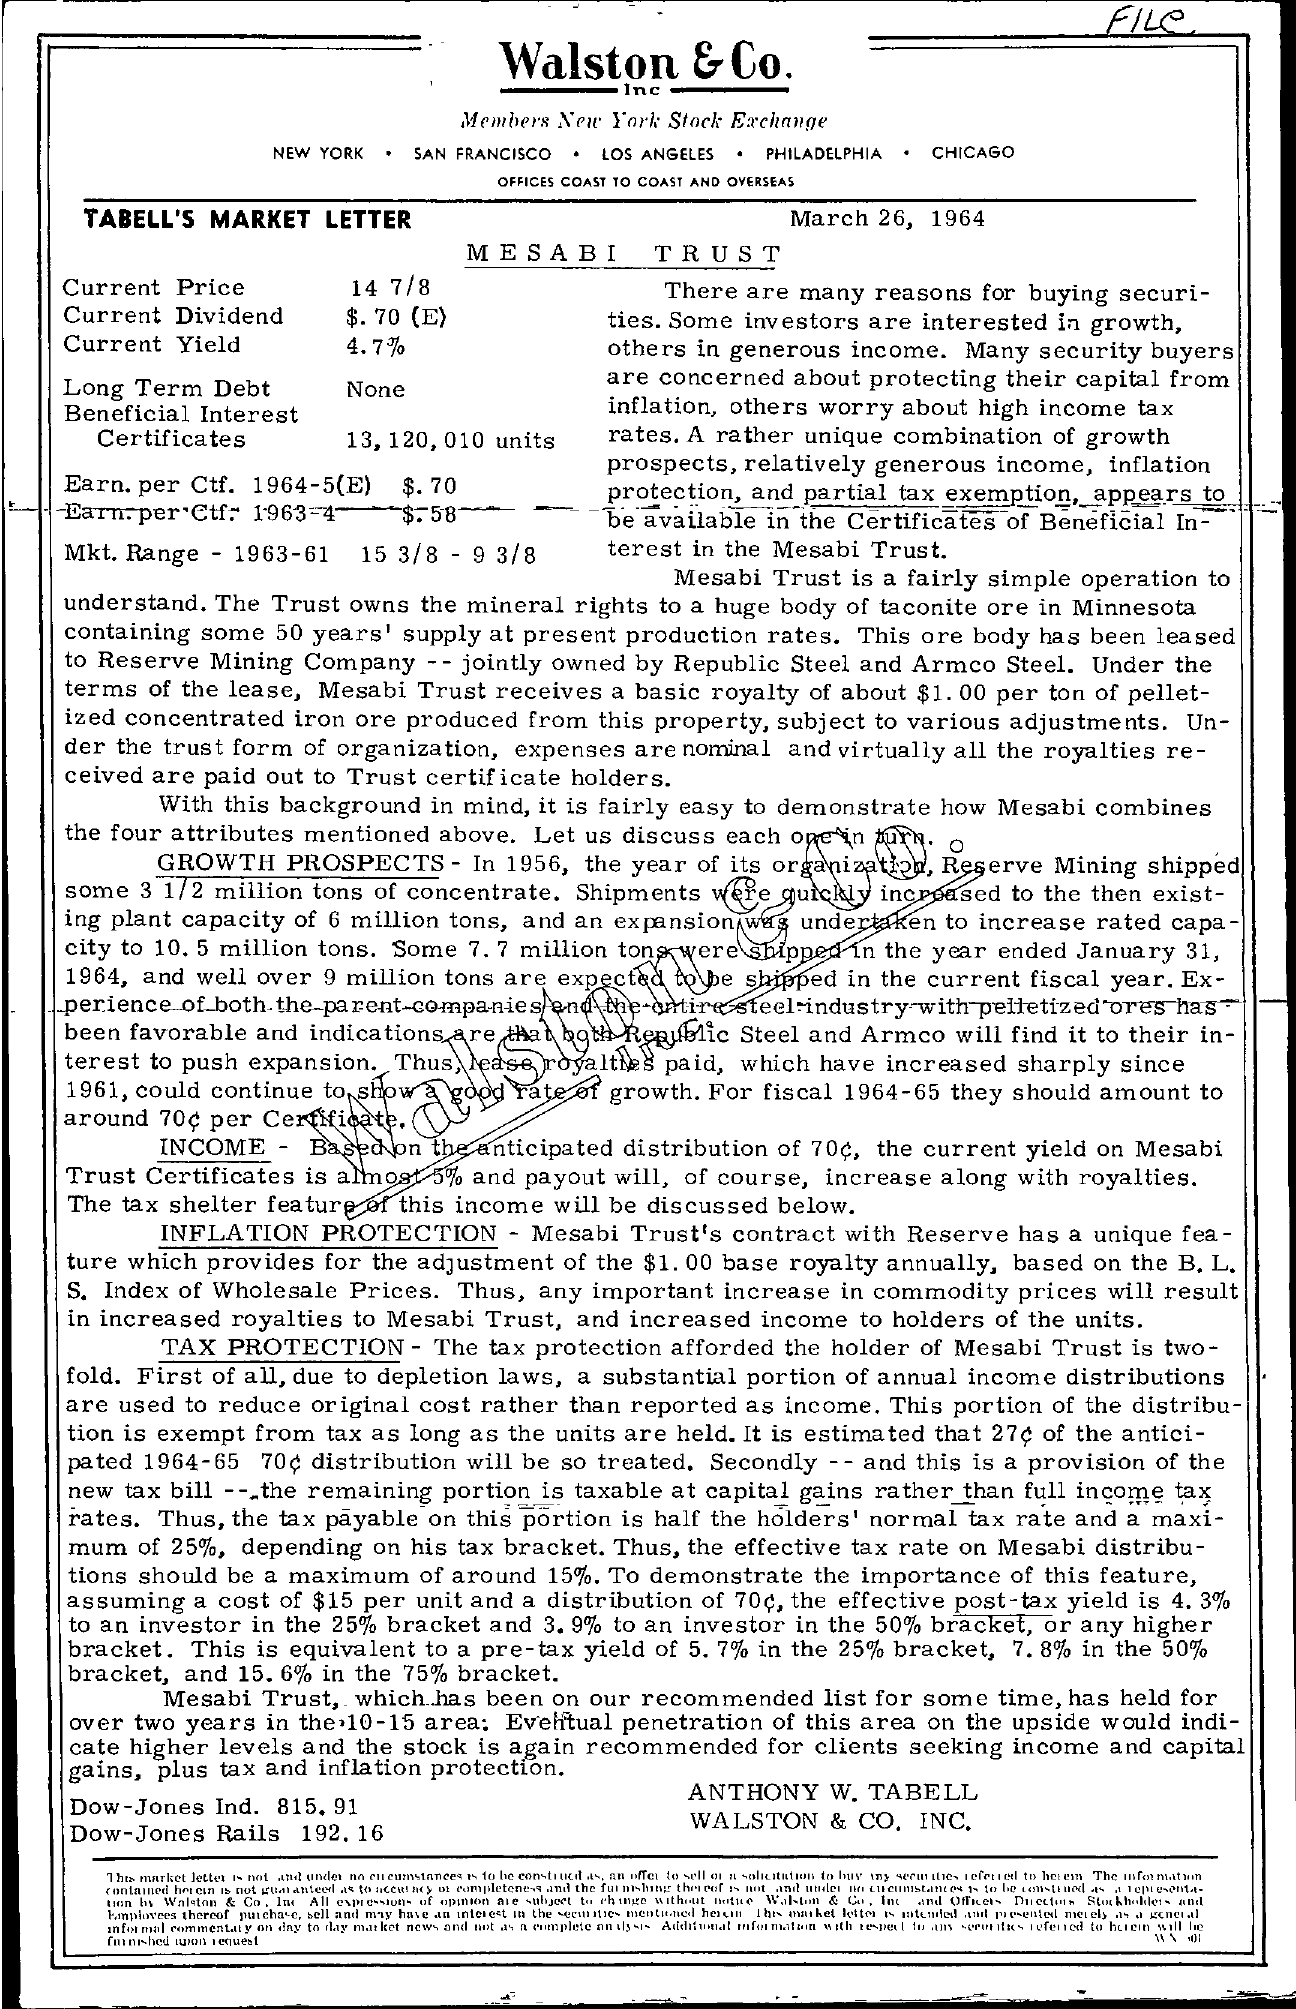 Tabell's Market Letter - March 26, 1964